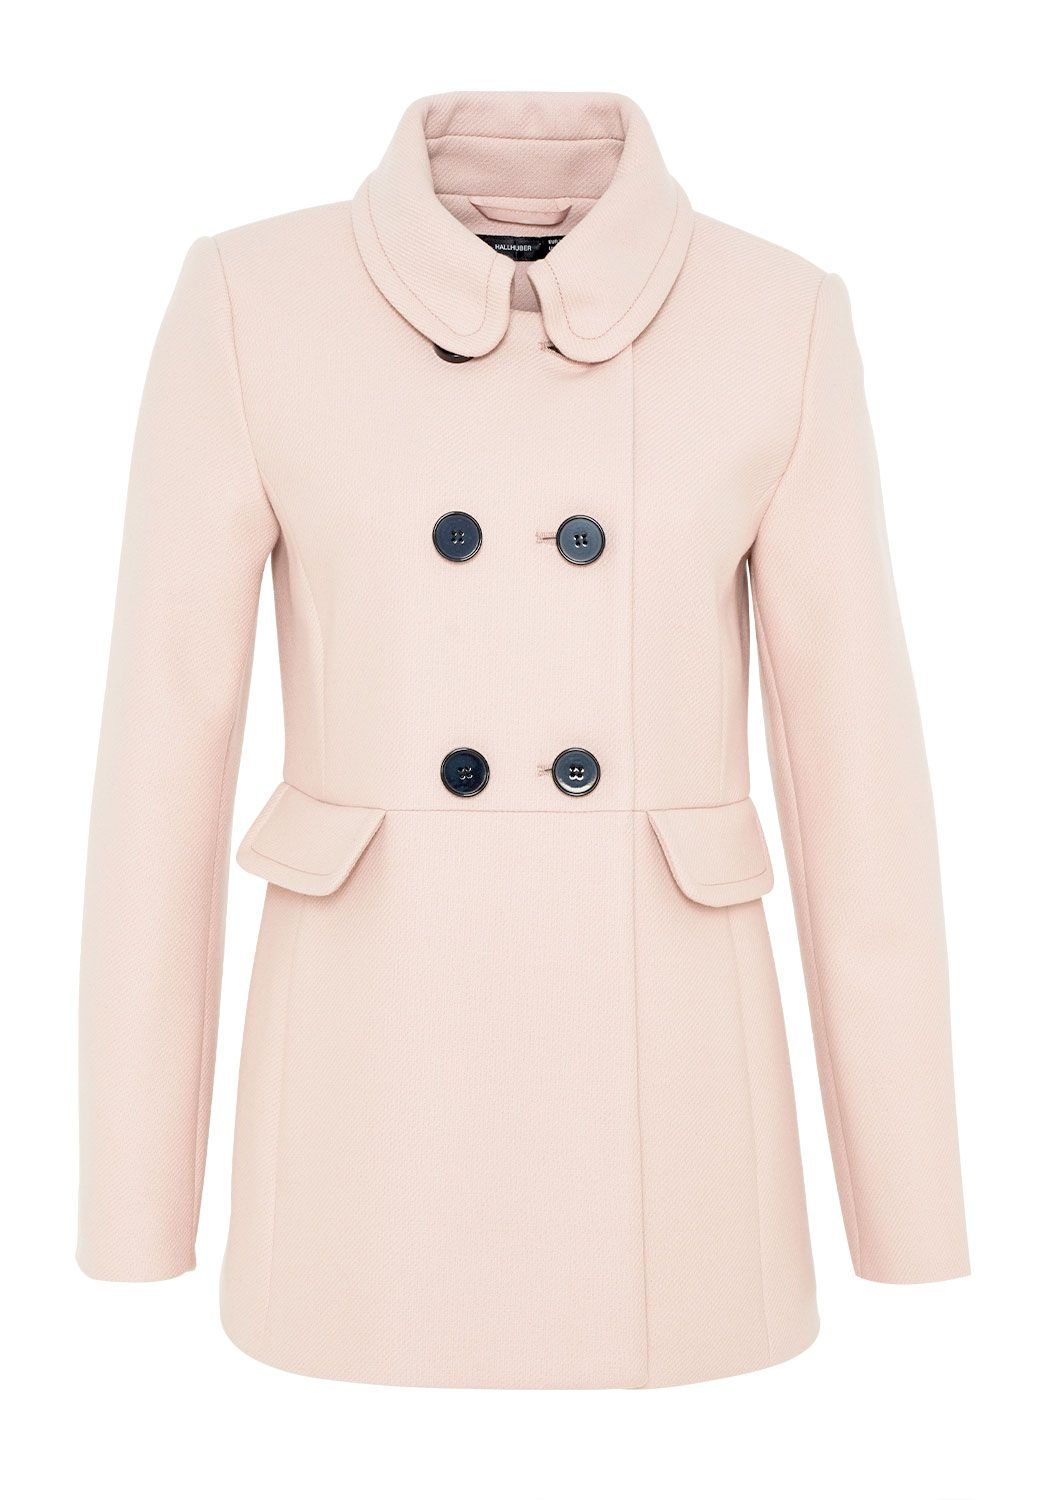 Hallhuber Double Layer Wool Jacket, Pink